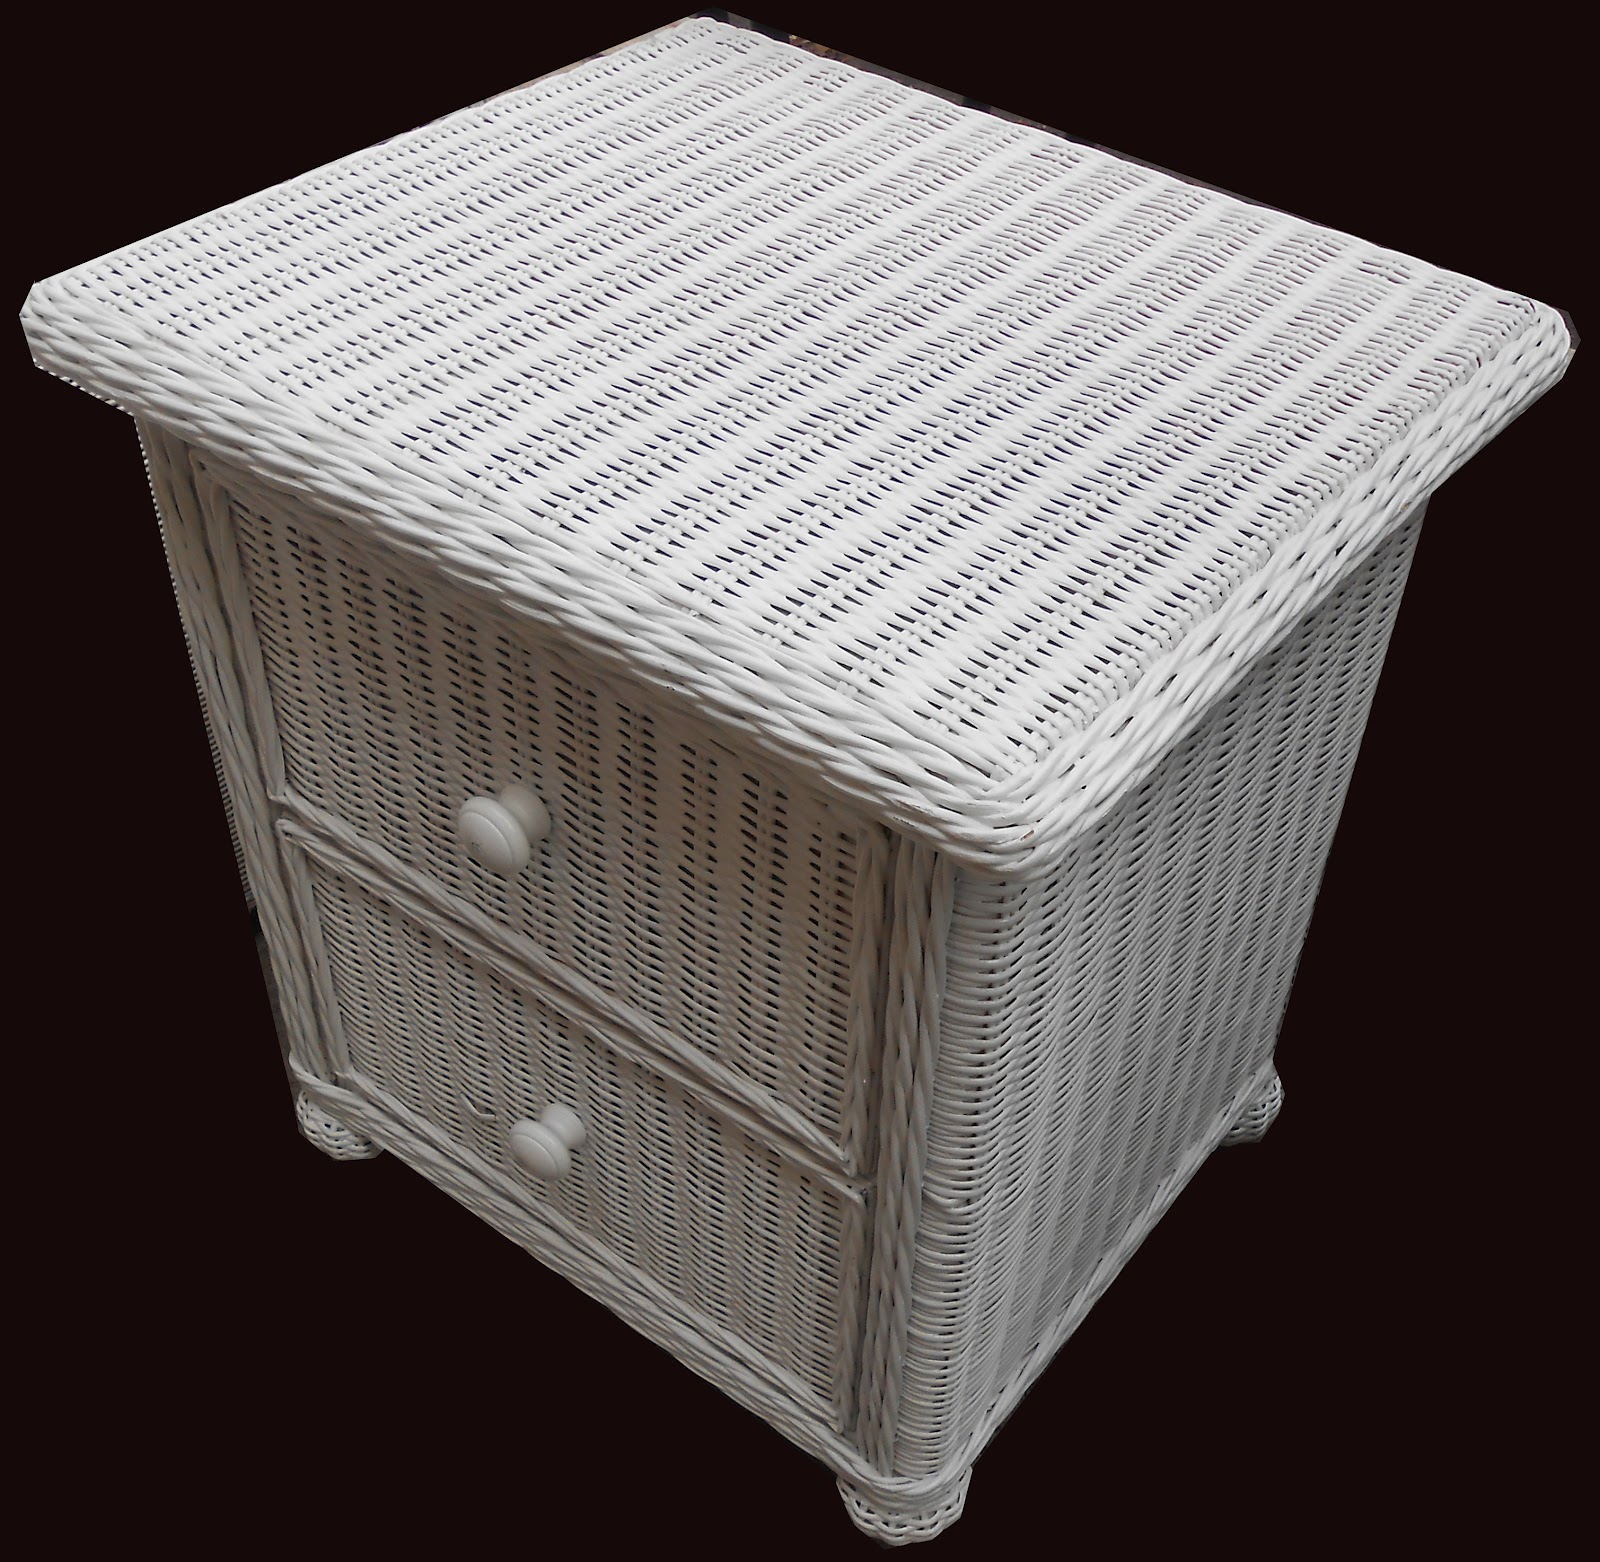 Uhuru furniture collectibles 3 piece white wicker White wicker bedroom furniture